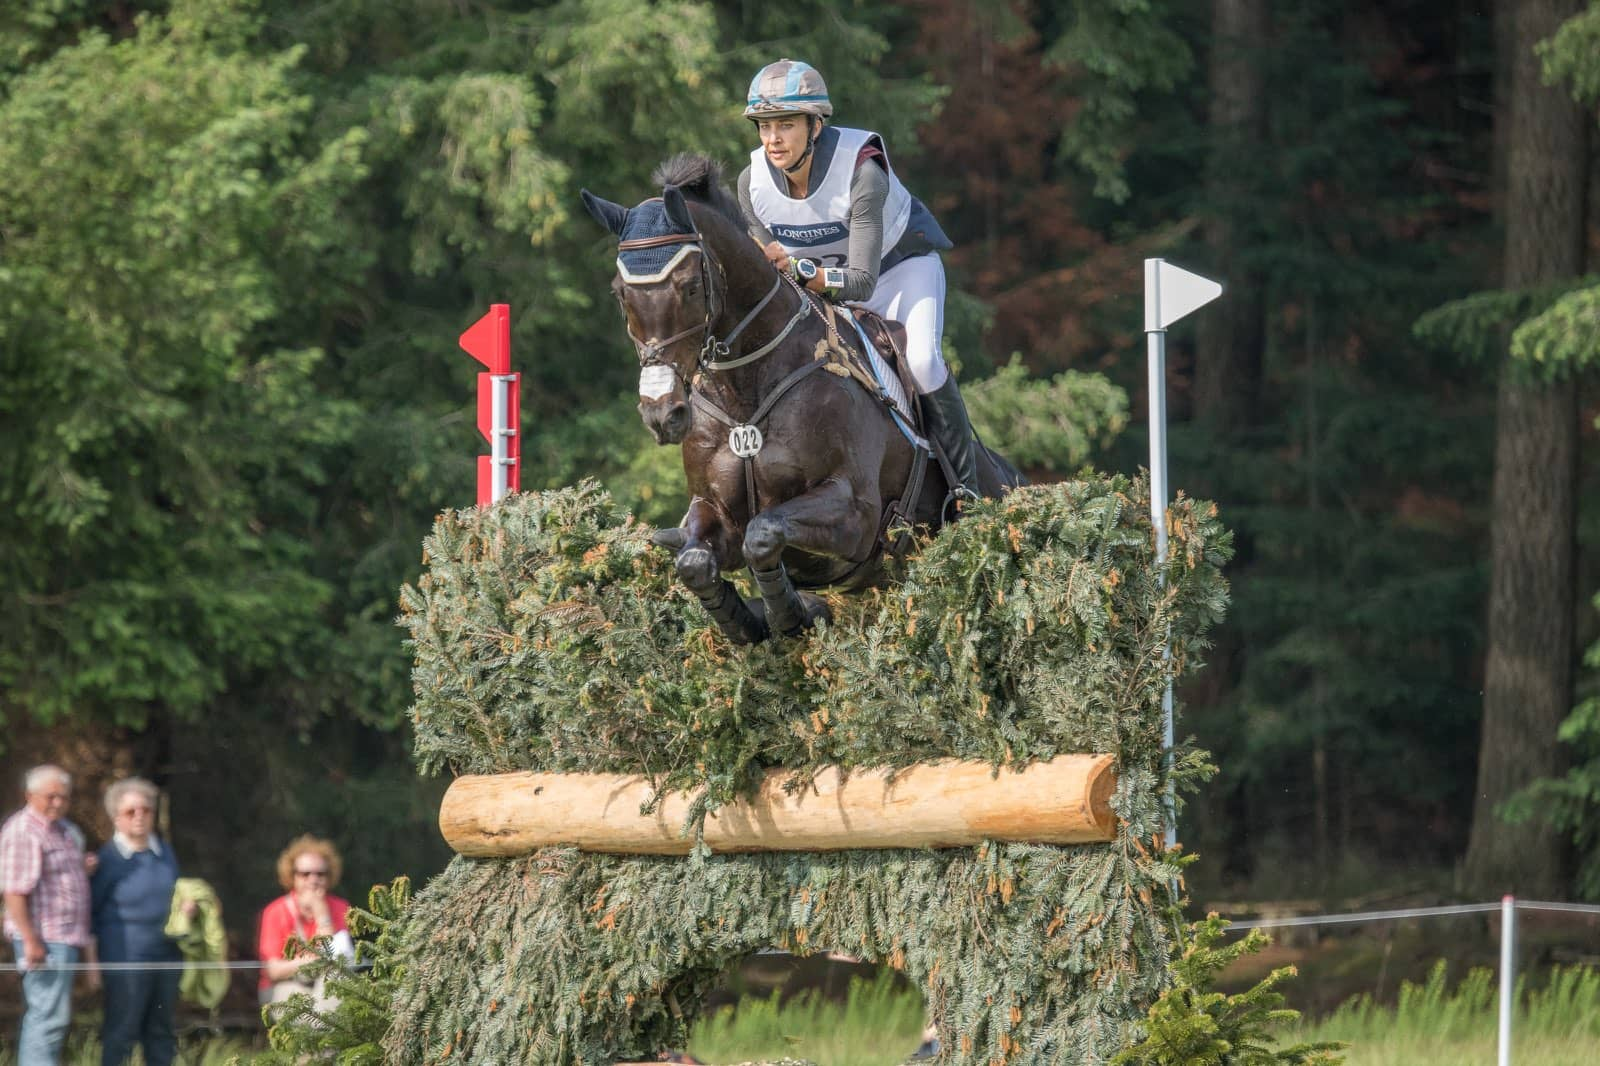 frankie thieriot stutes eventing champion on horse